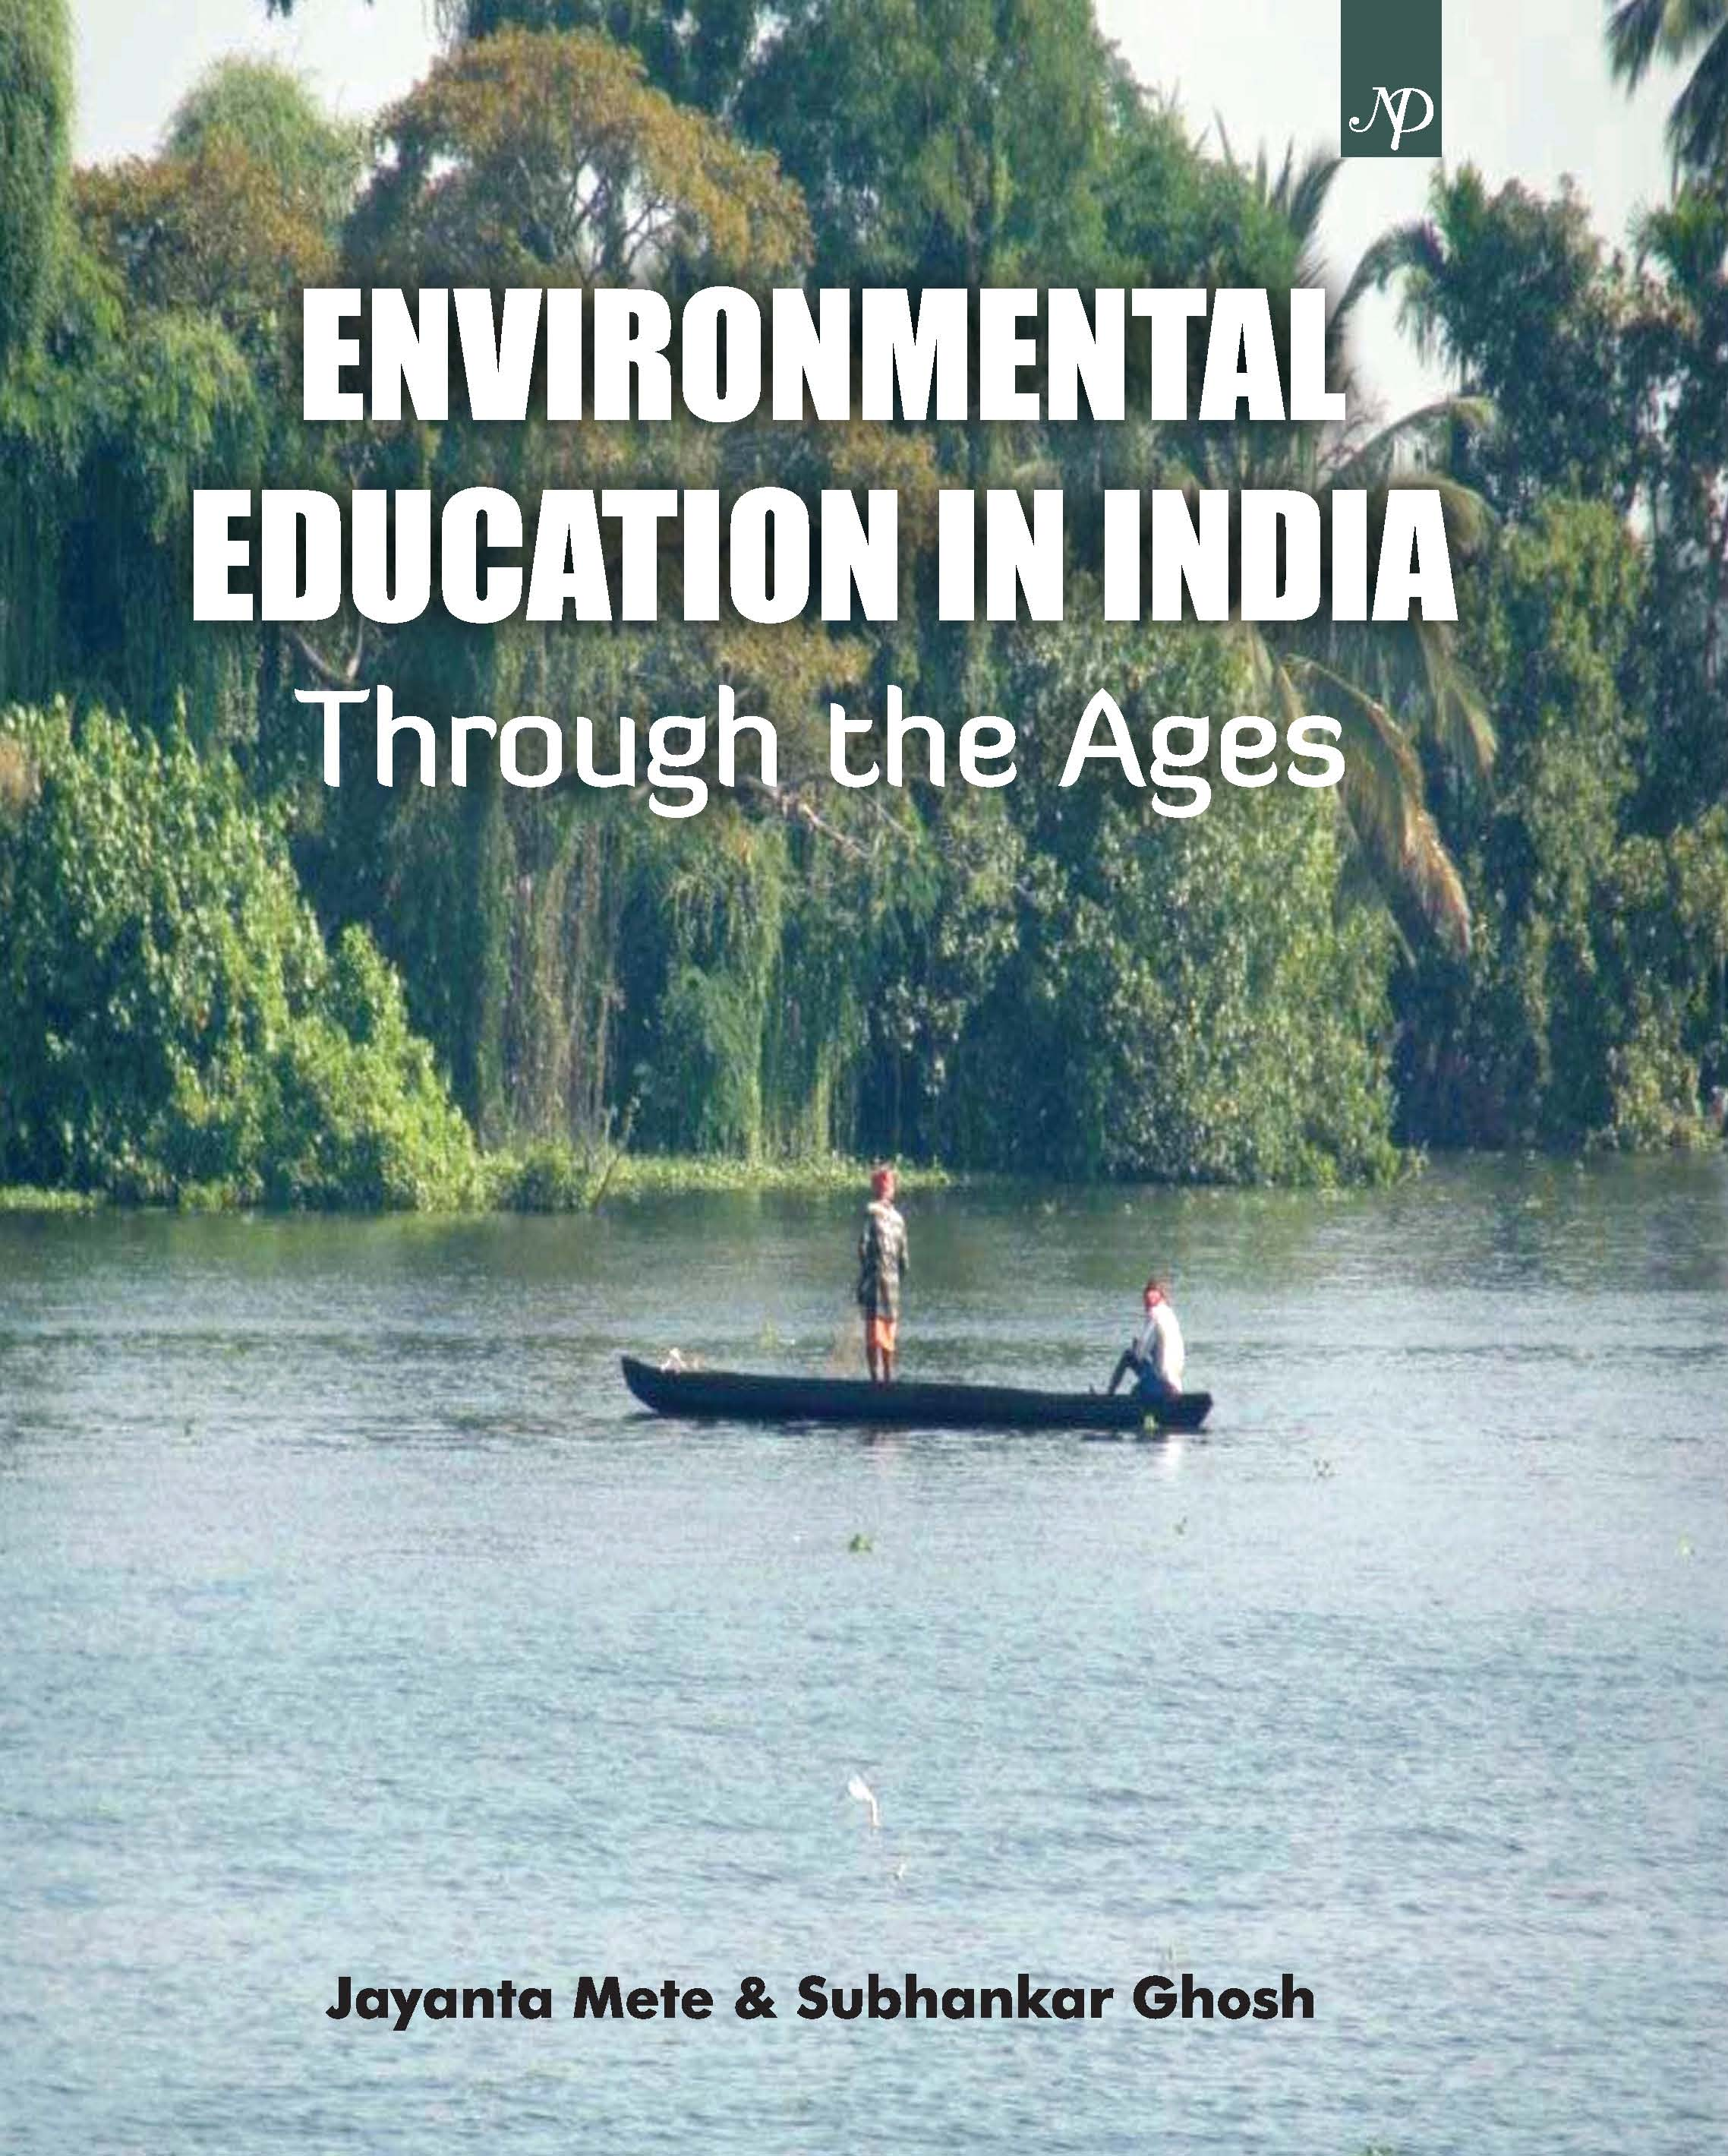 Environmental education in india.jpg